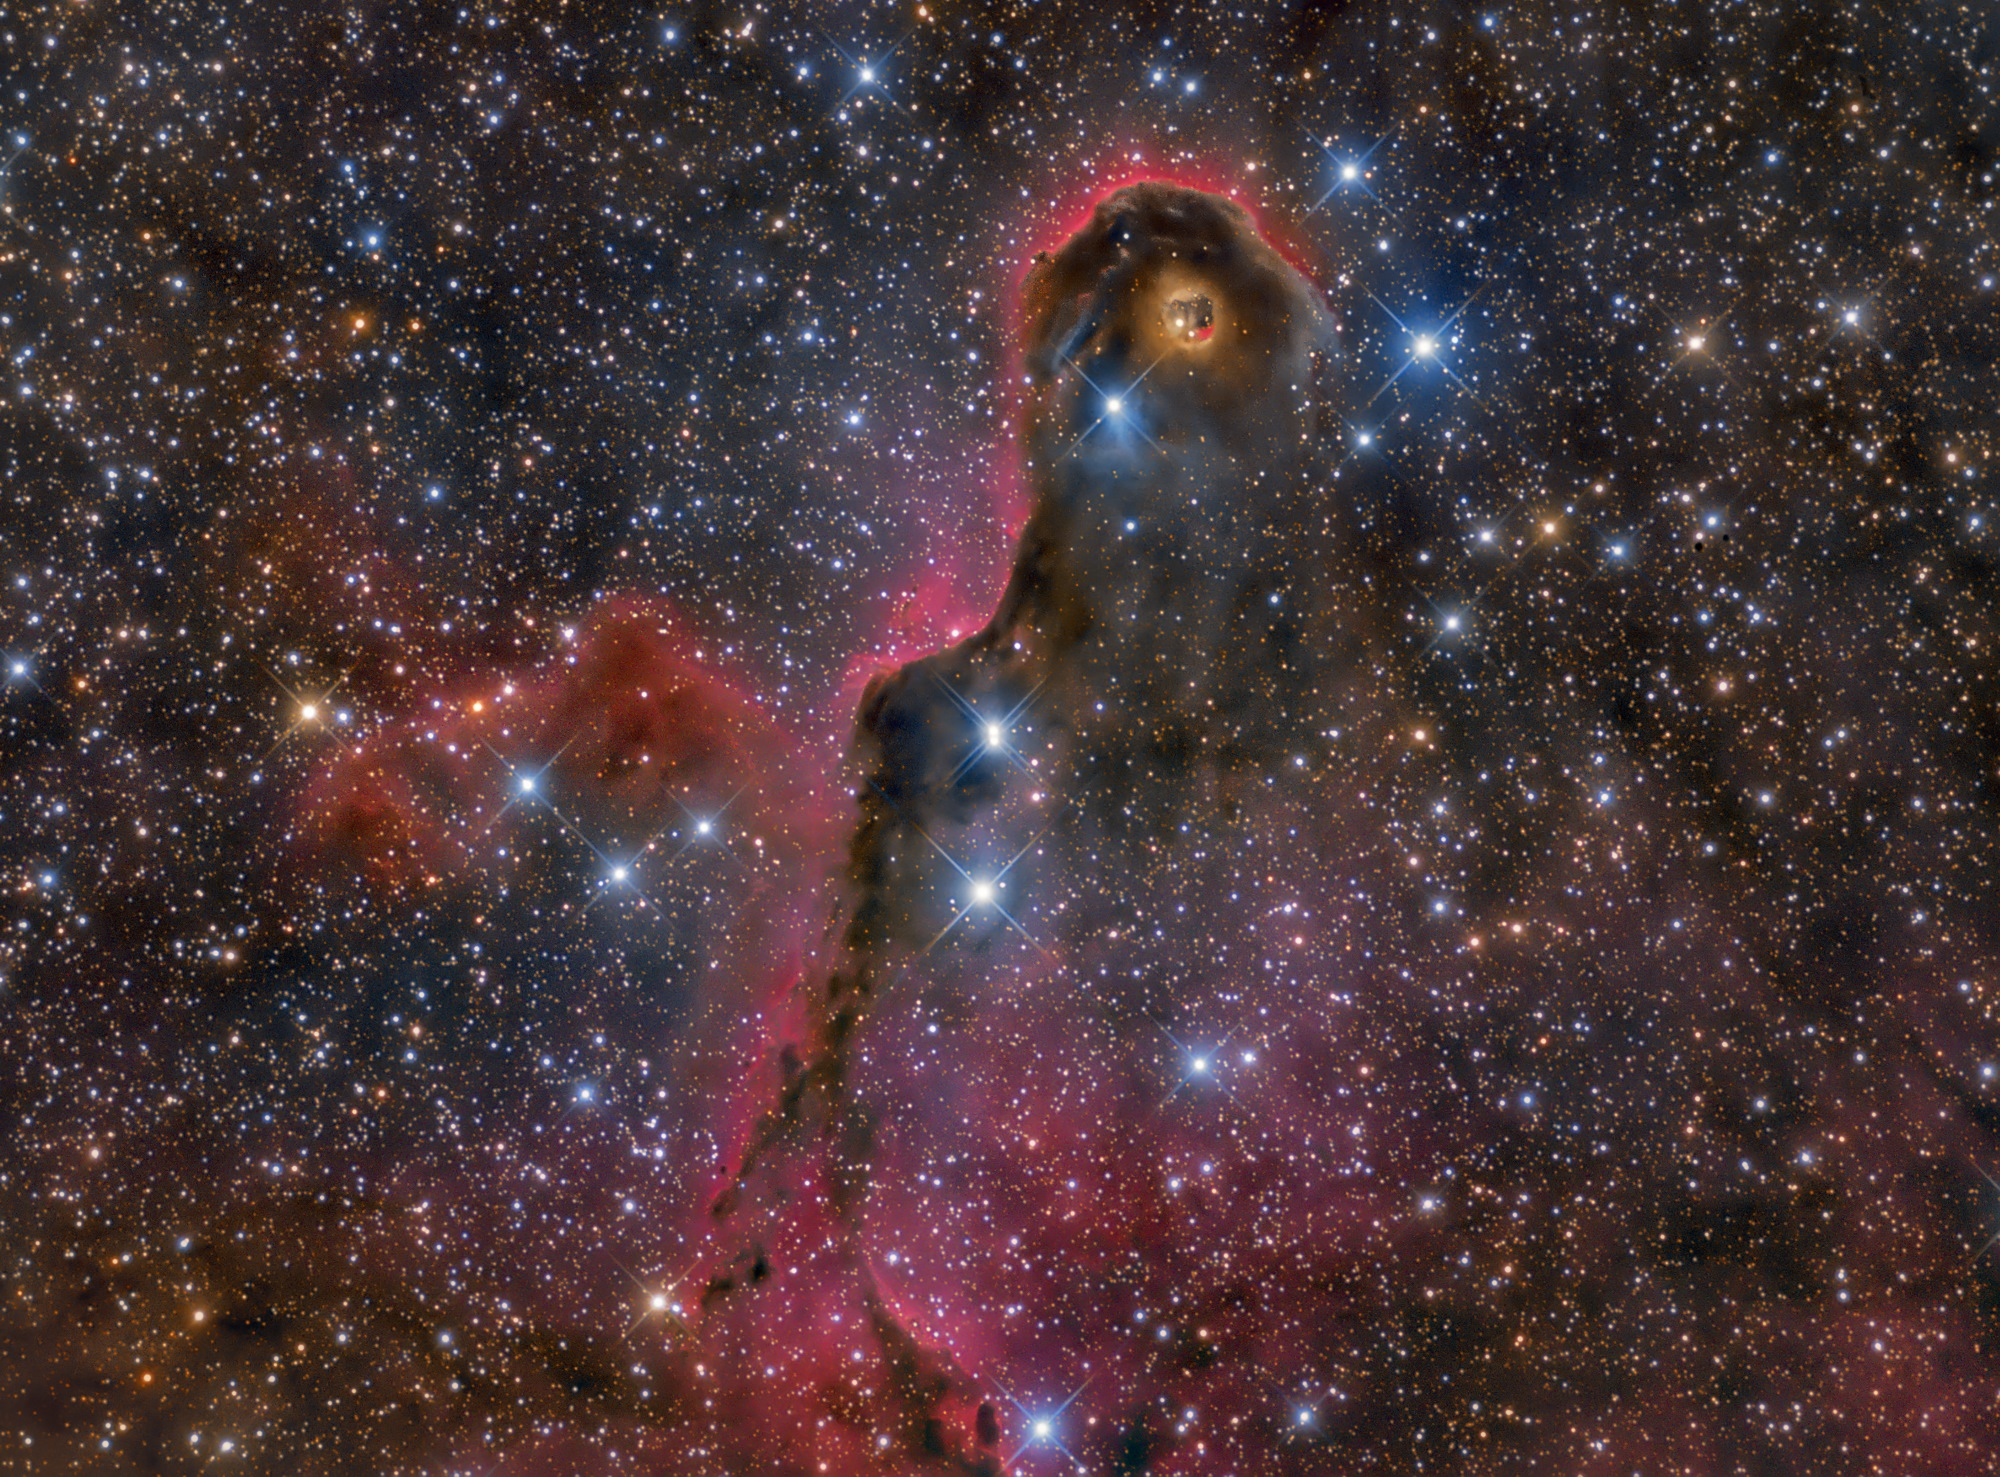 Highly Commended: The Elegant Elephant's Trunk by Lluís Romero Ventura | Insight Investment Astronomy Photographer of the Year 2019 | Stars and Nebulae